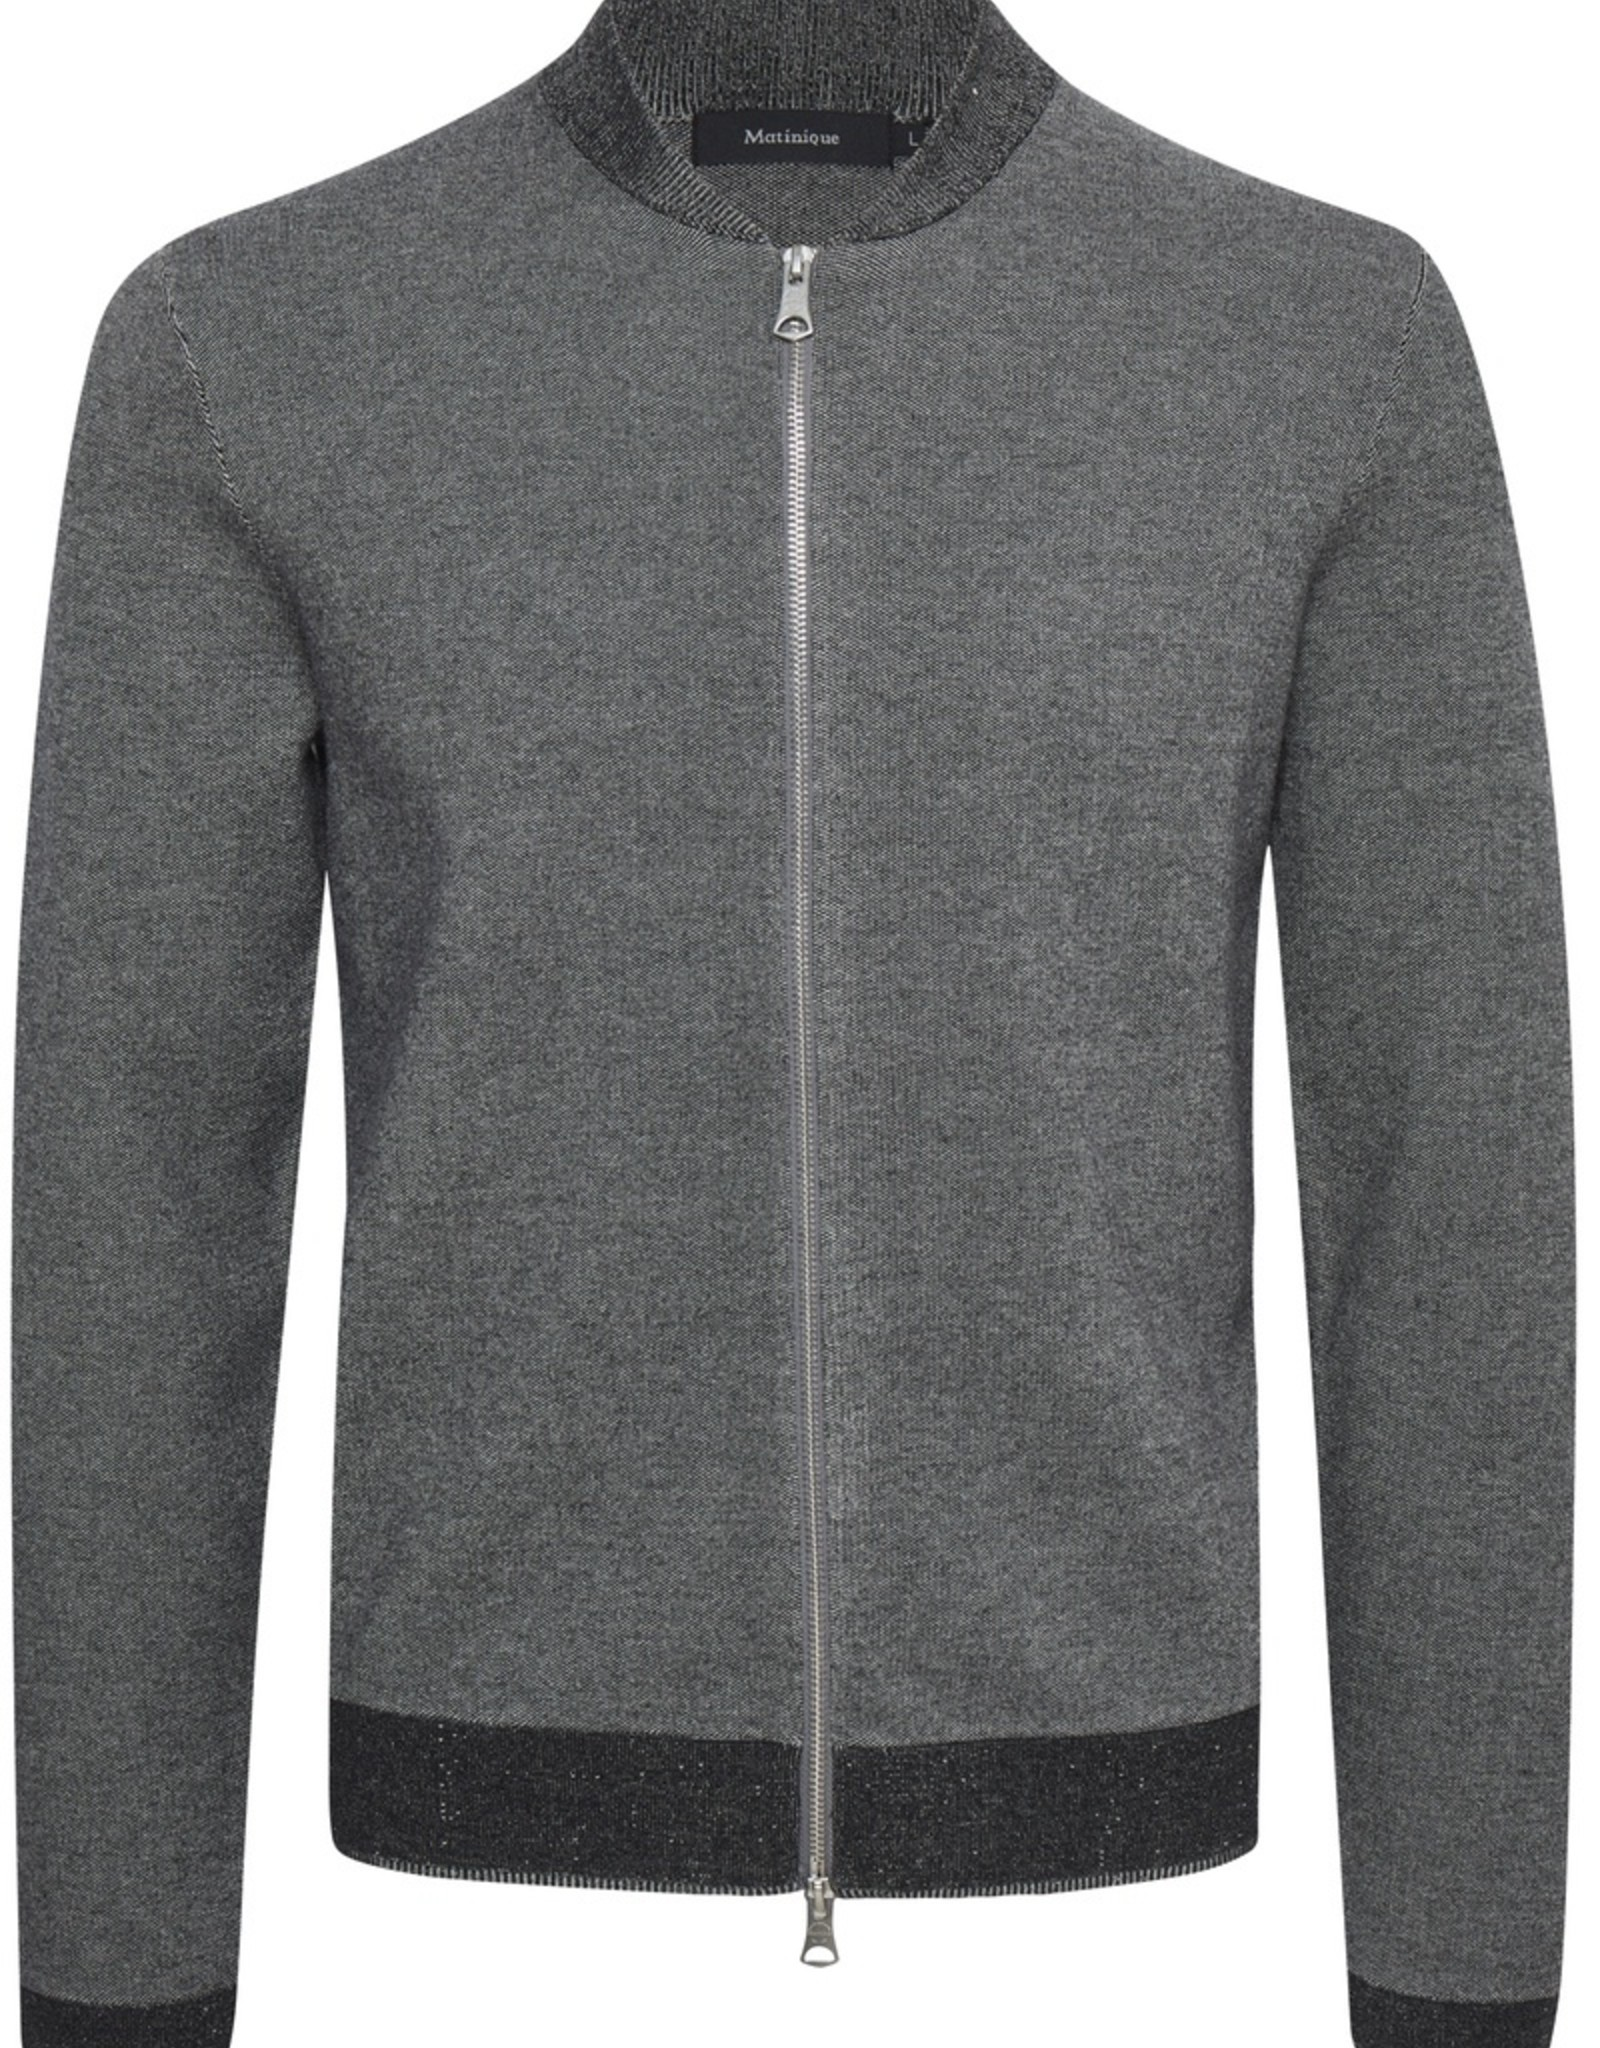 Matinique Matinique Parry Full Zip Baseball Jacket